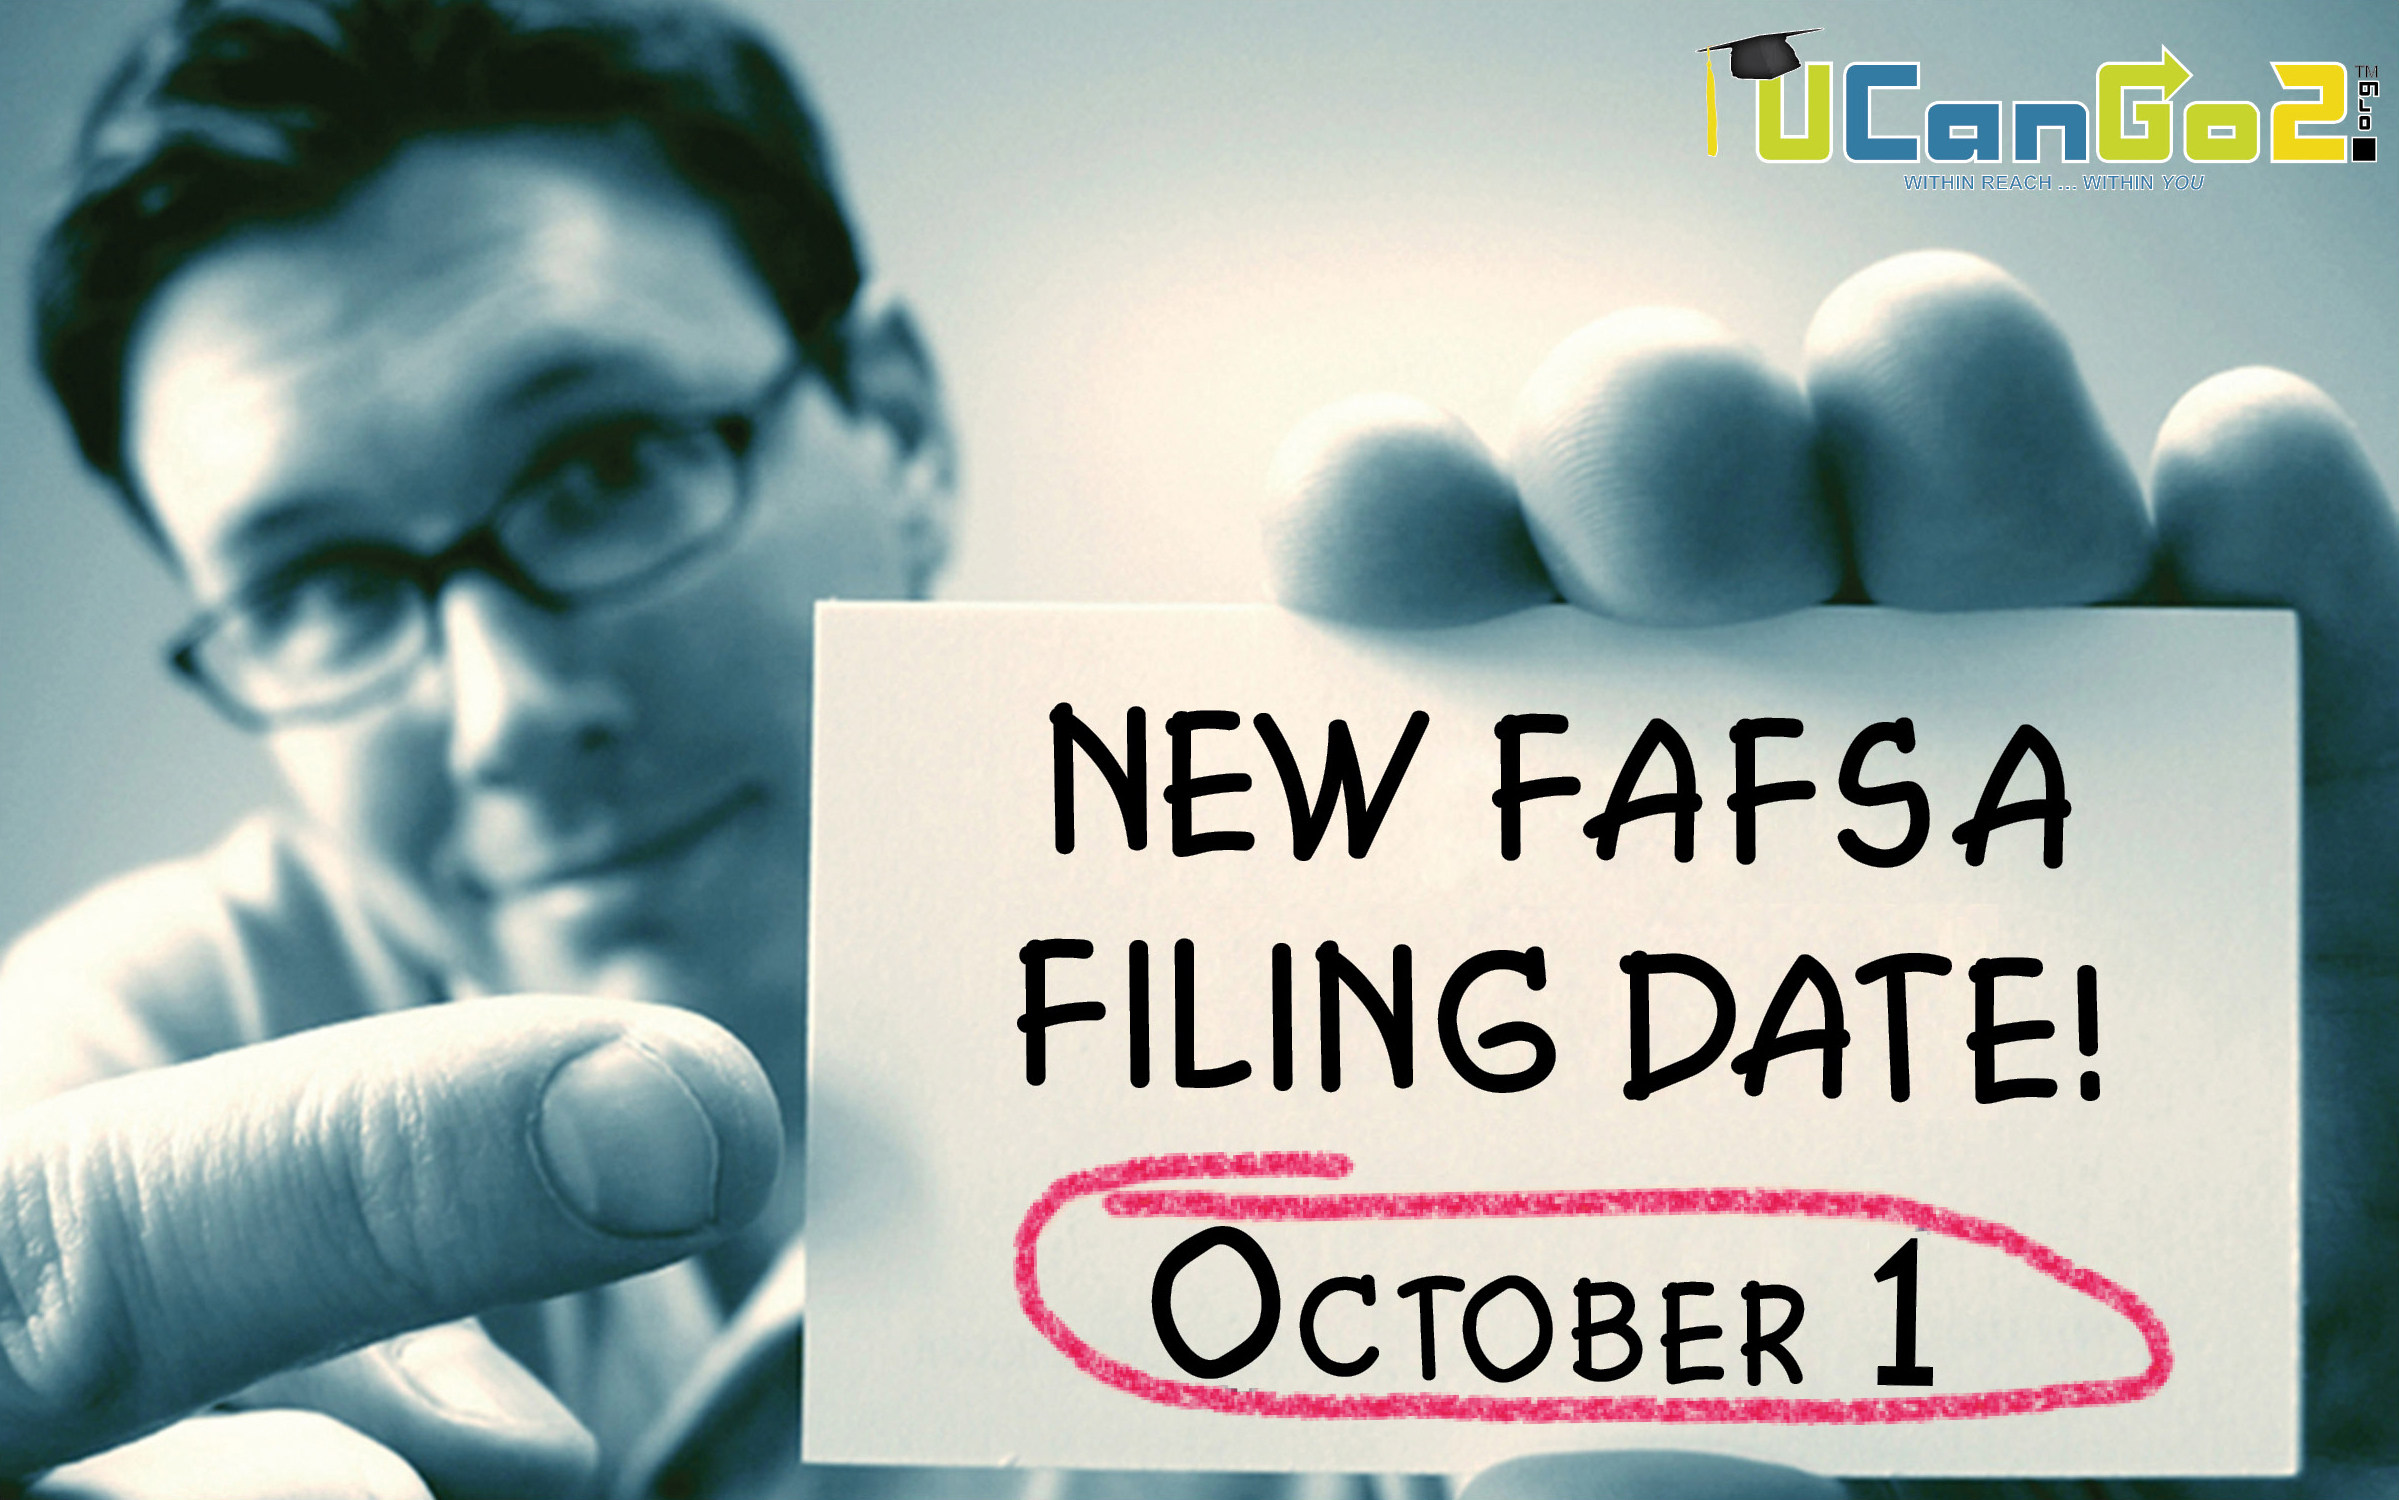 New Release Date For Fafsa